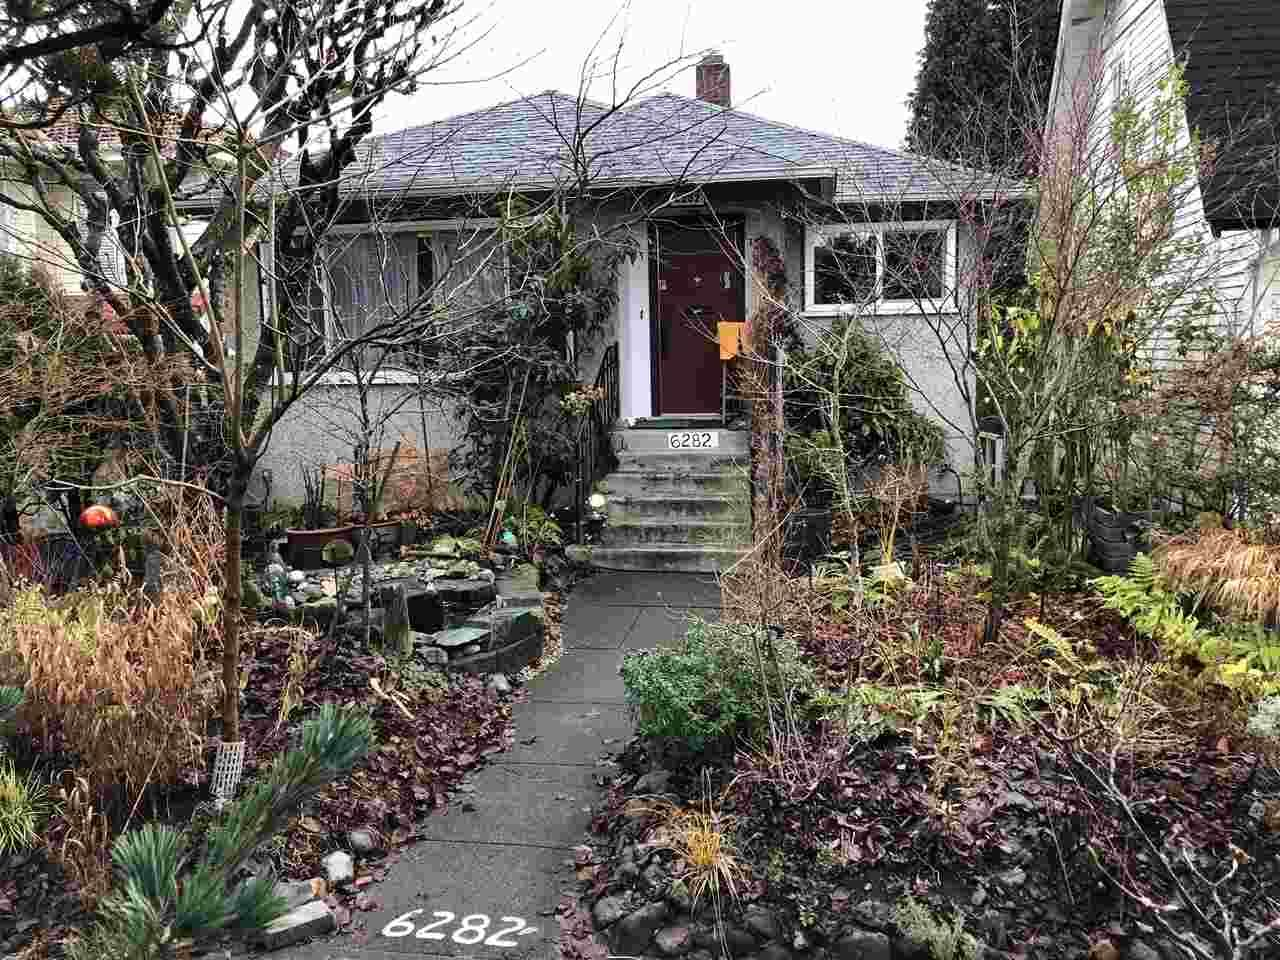 Main Photo: 6282 WINDSOR Street in Vancouver: Fraser VE House for sale (Vancouver East)  : MLS®# R2424639